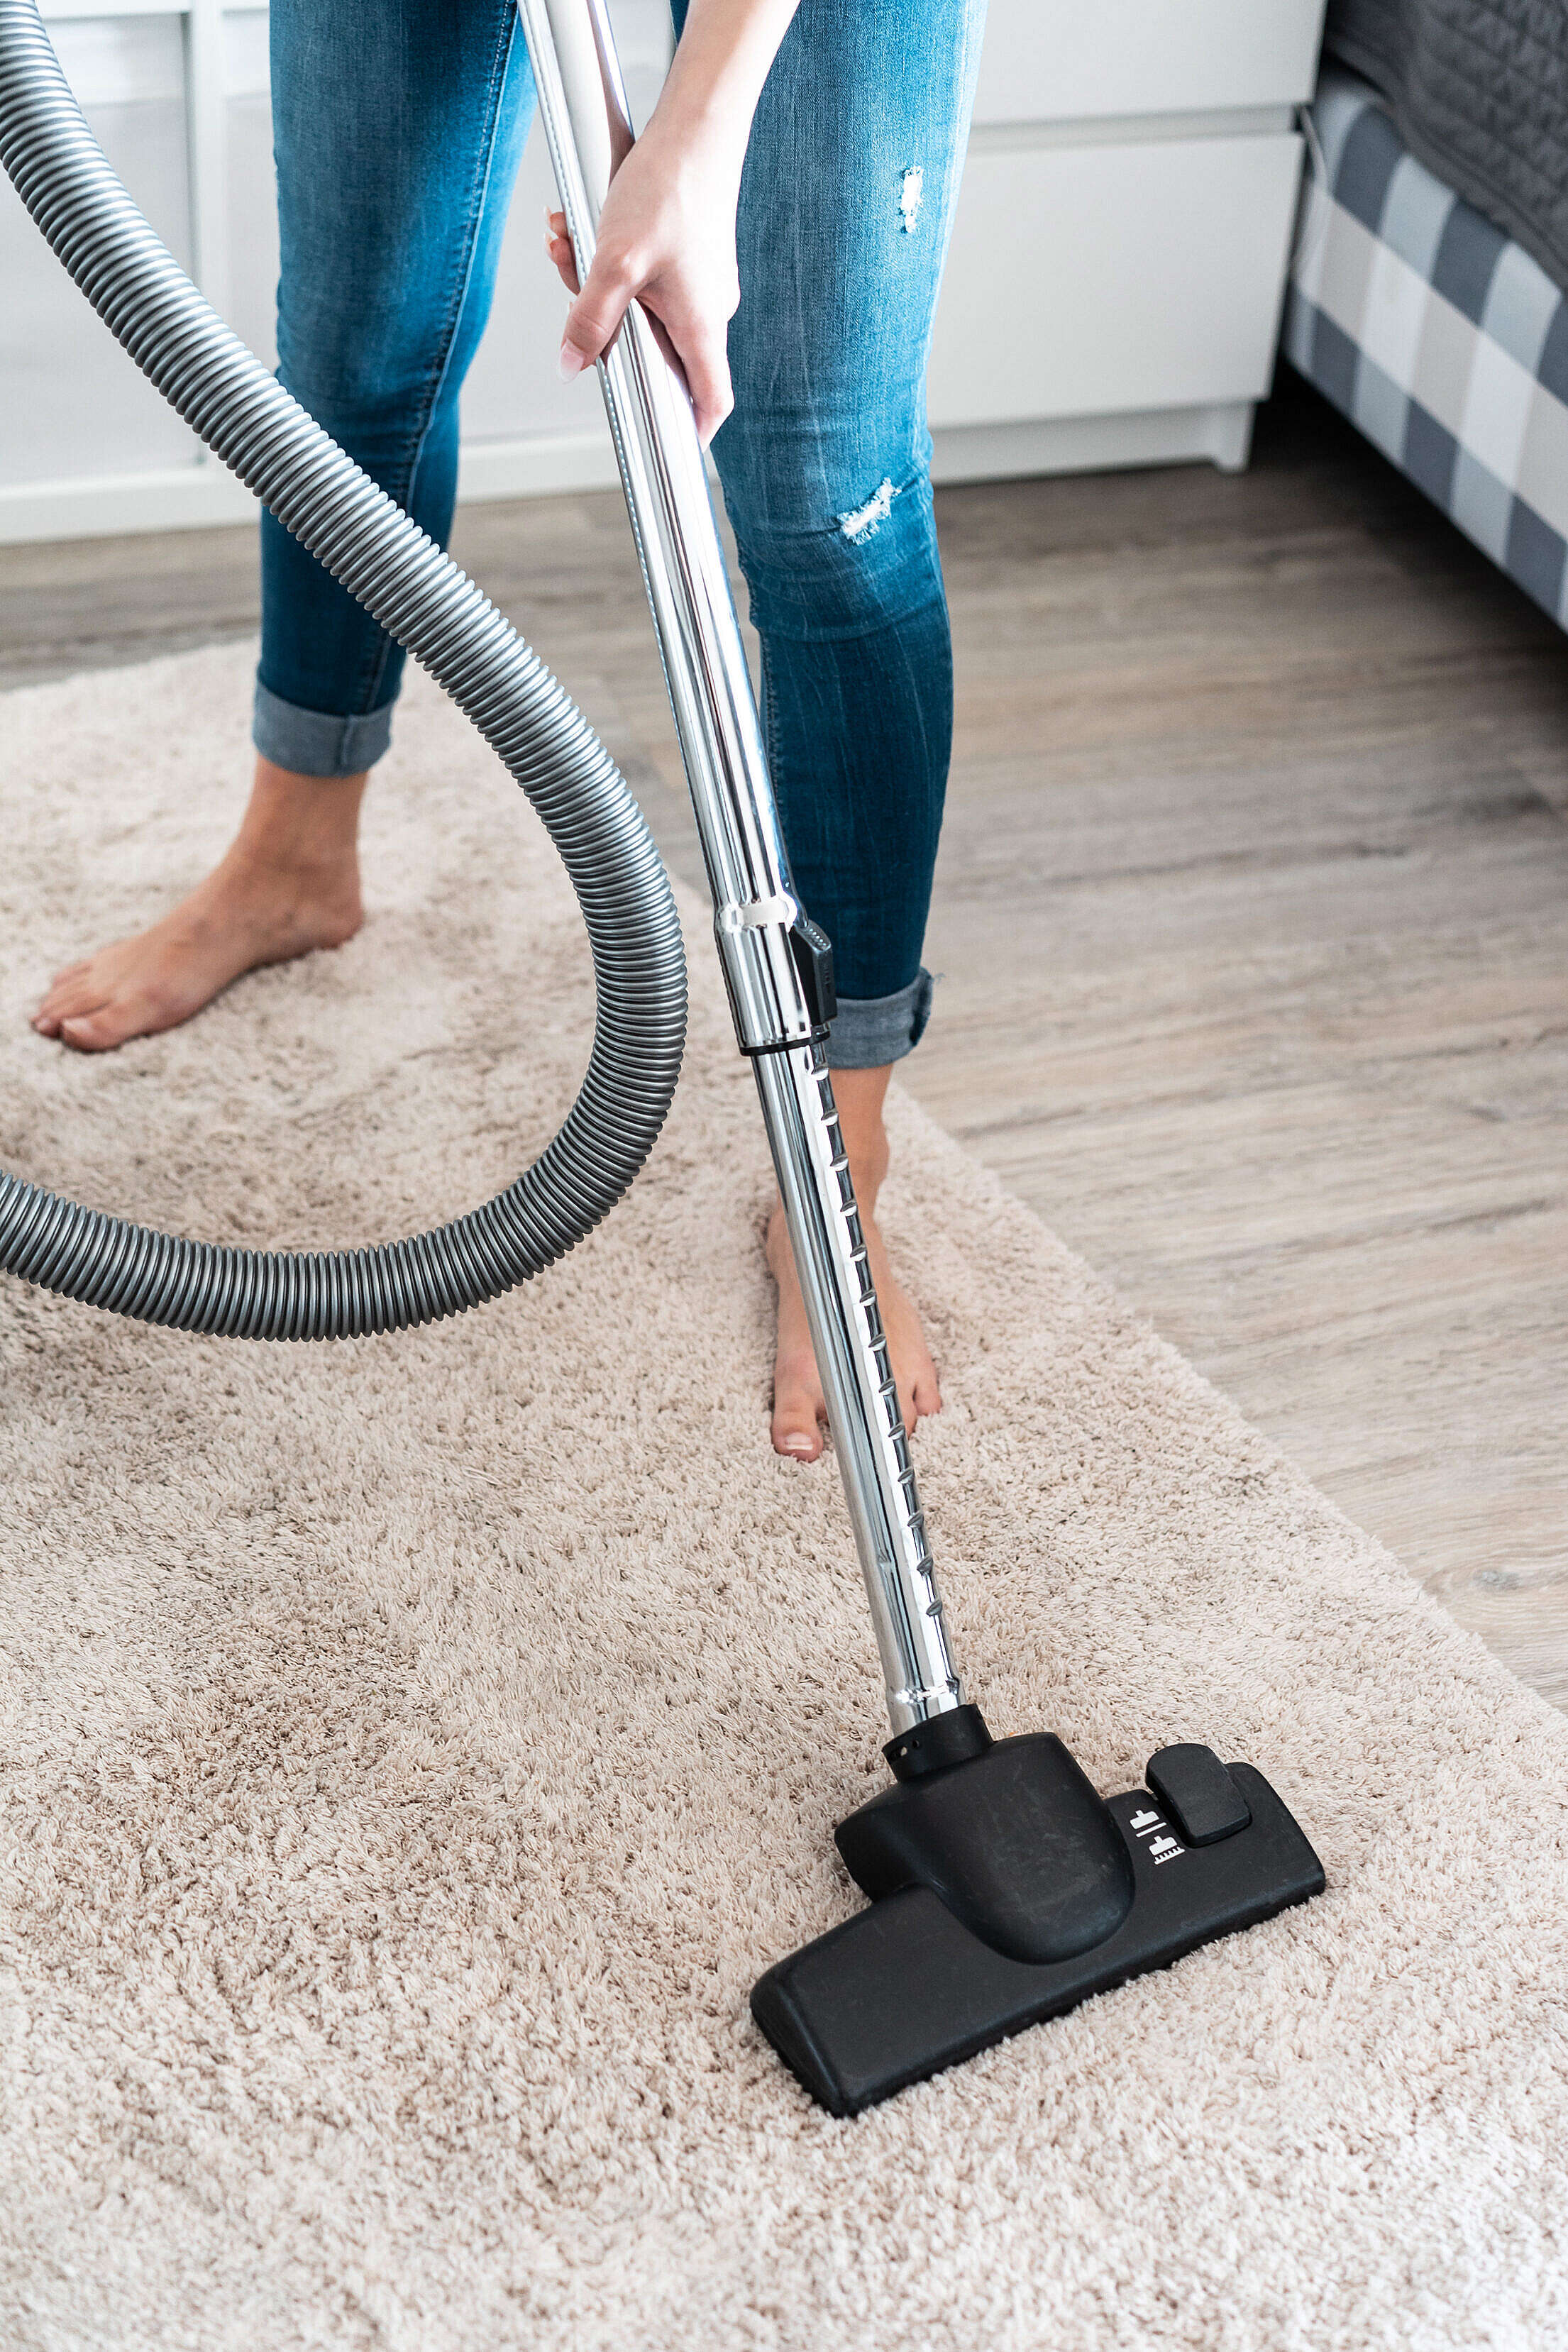 Woman Cleaning Vacuuming the Carpet at Home Free Stock Photo